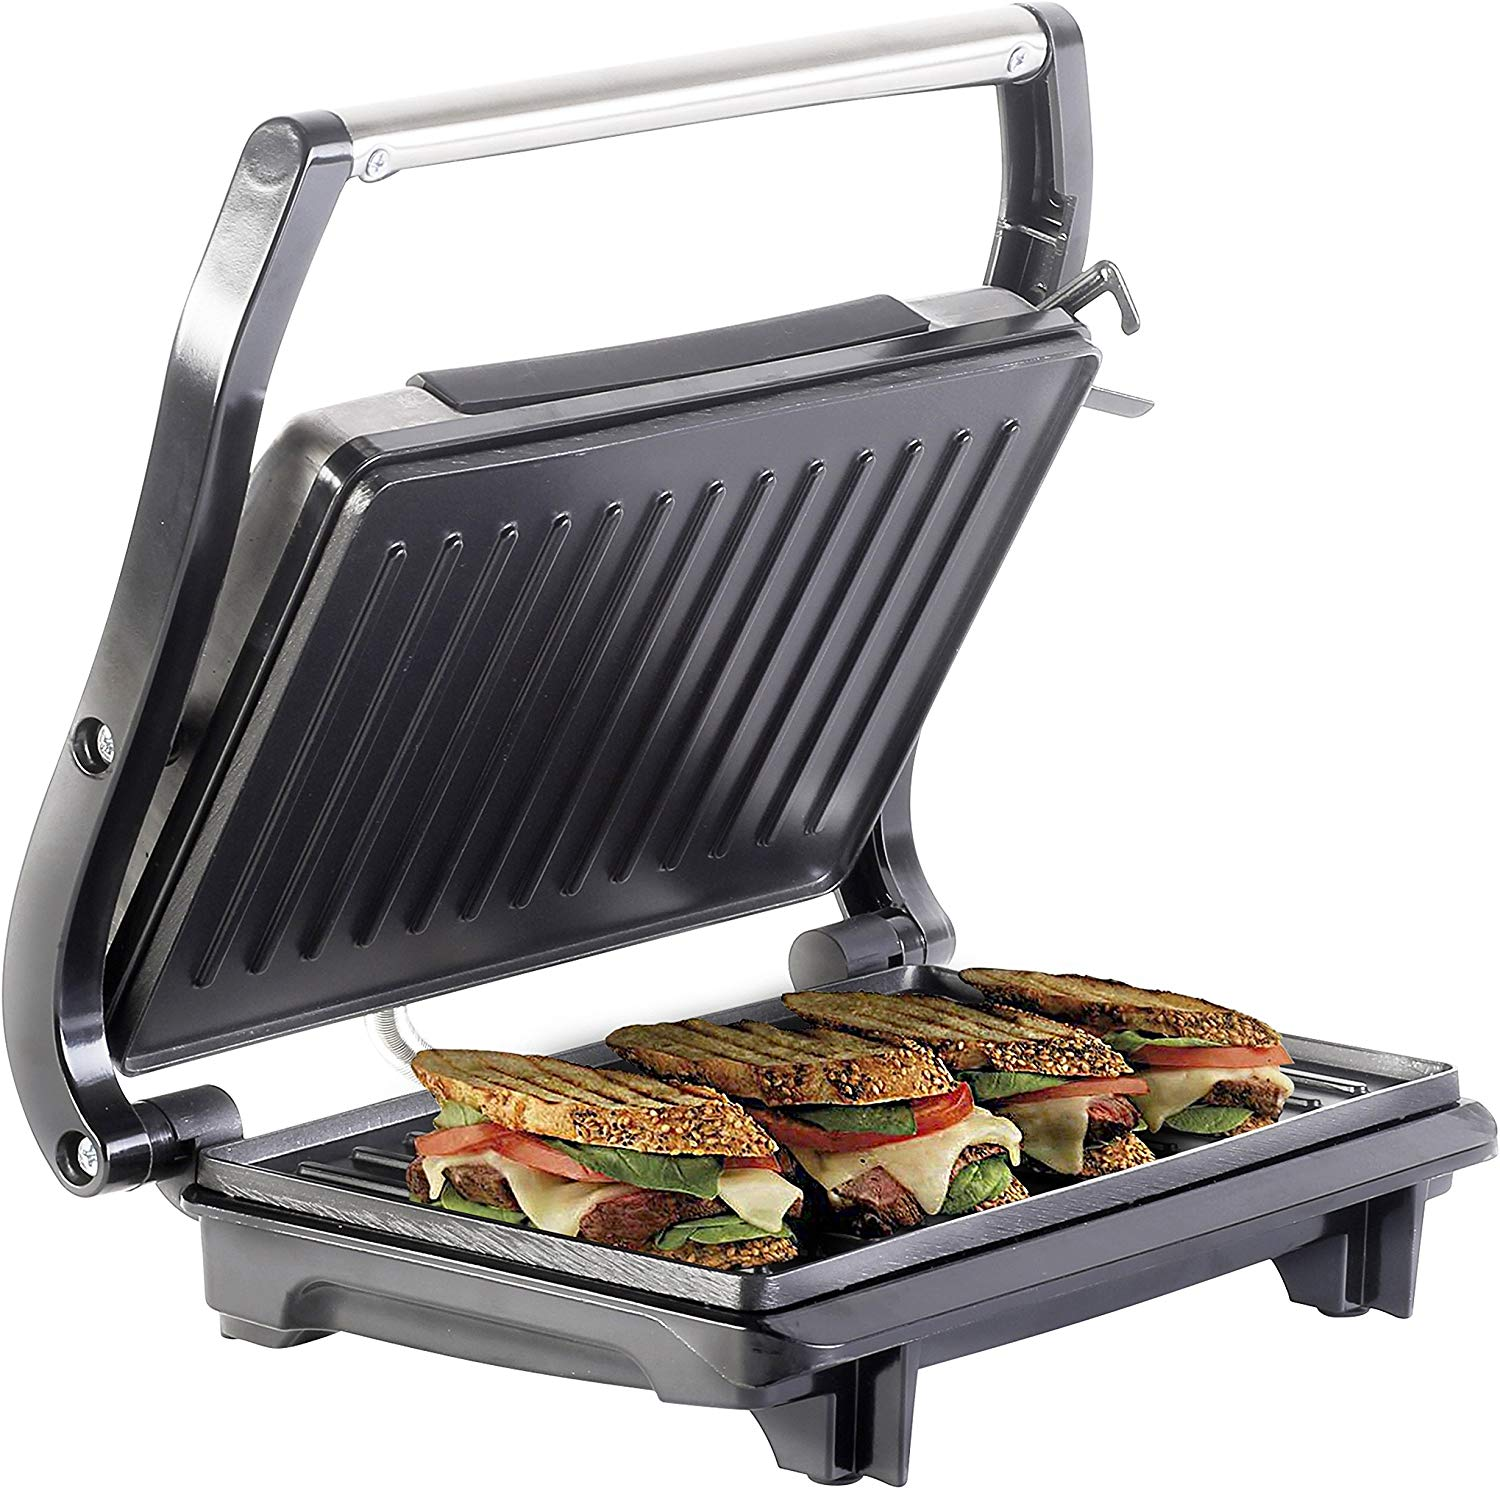 Lifelong LLPM1000 Panini 1000W 2 Slice Grill Sandwich Maker